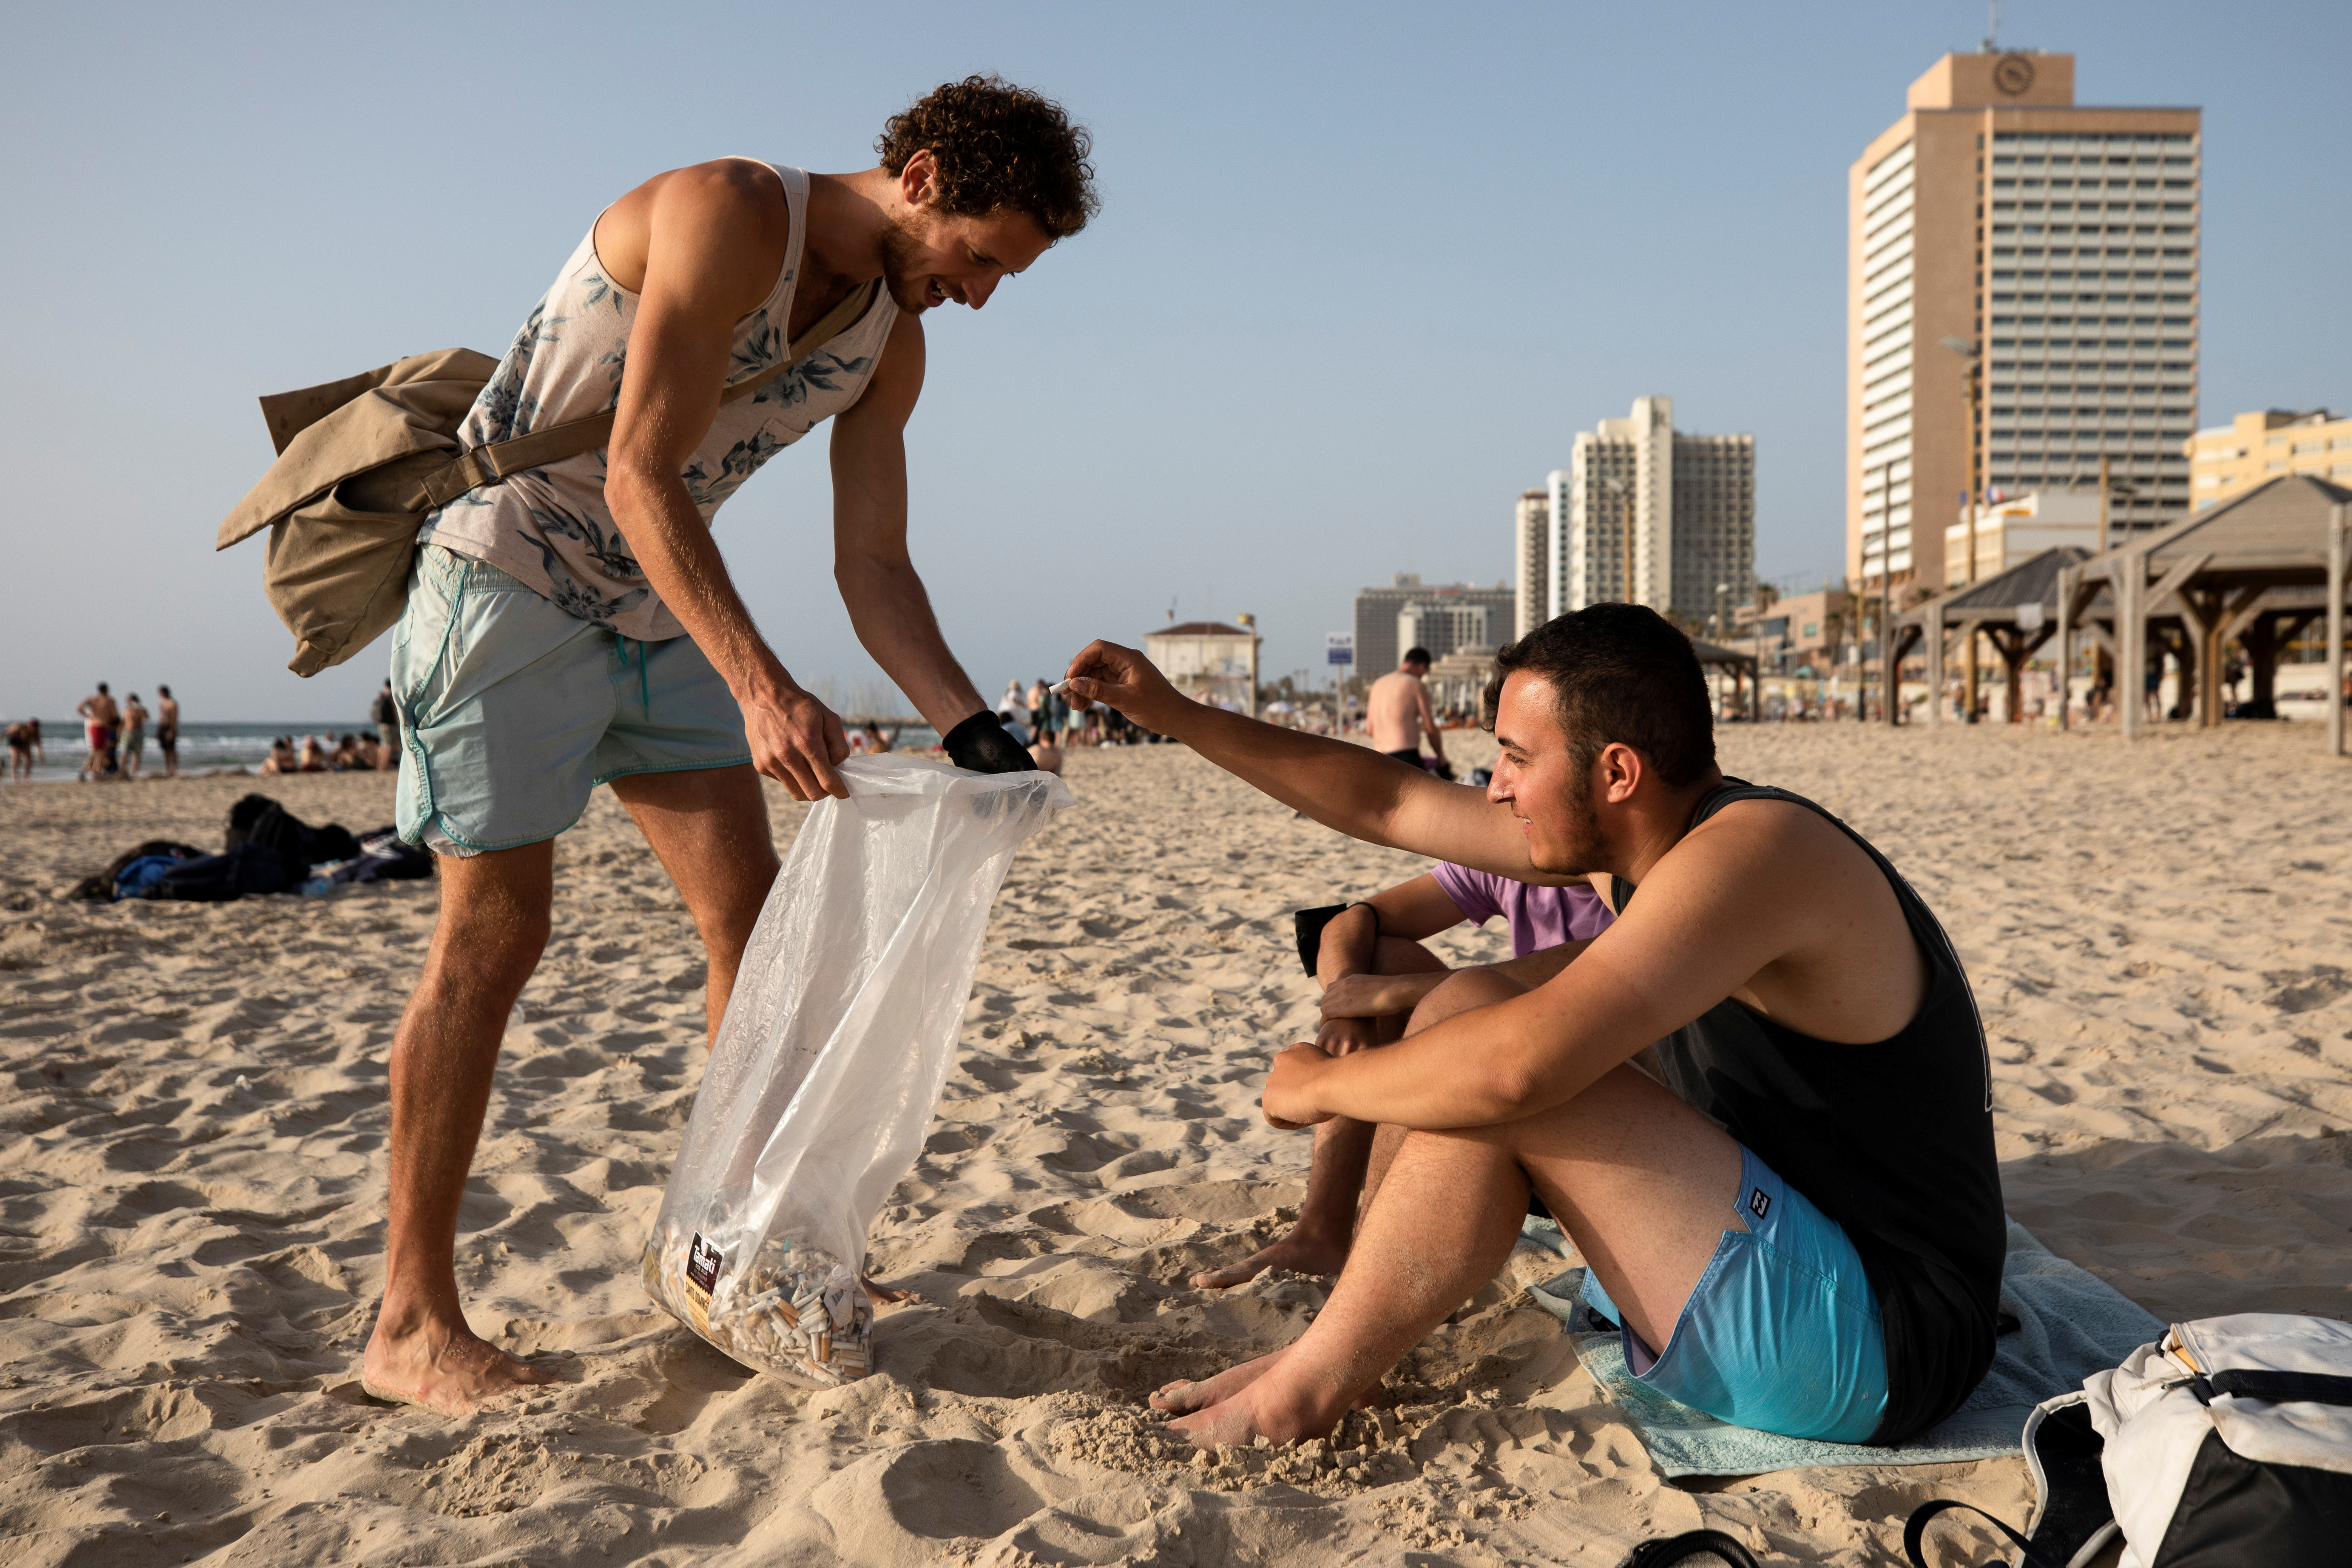 Julian Melcer collects a cigarette butt from a beach-goer as part of his environmental campaign at a beach in Tel Aviv, Israel April 20, 2021.   REUTERS/Amir Cohen